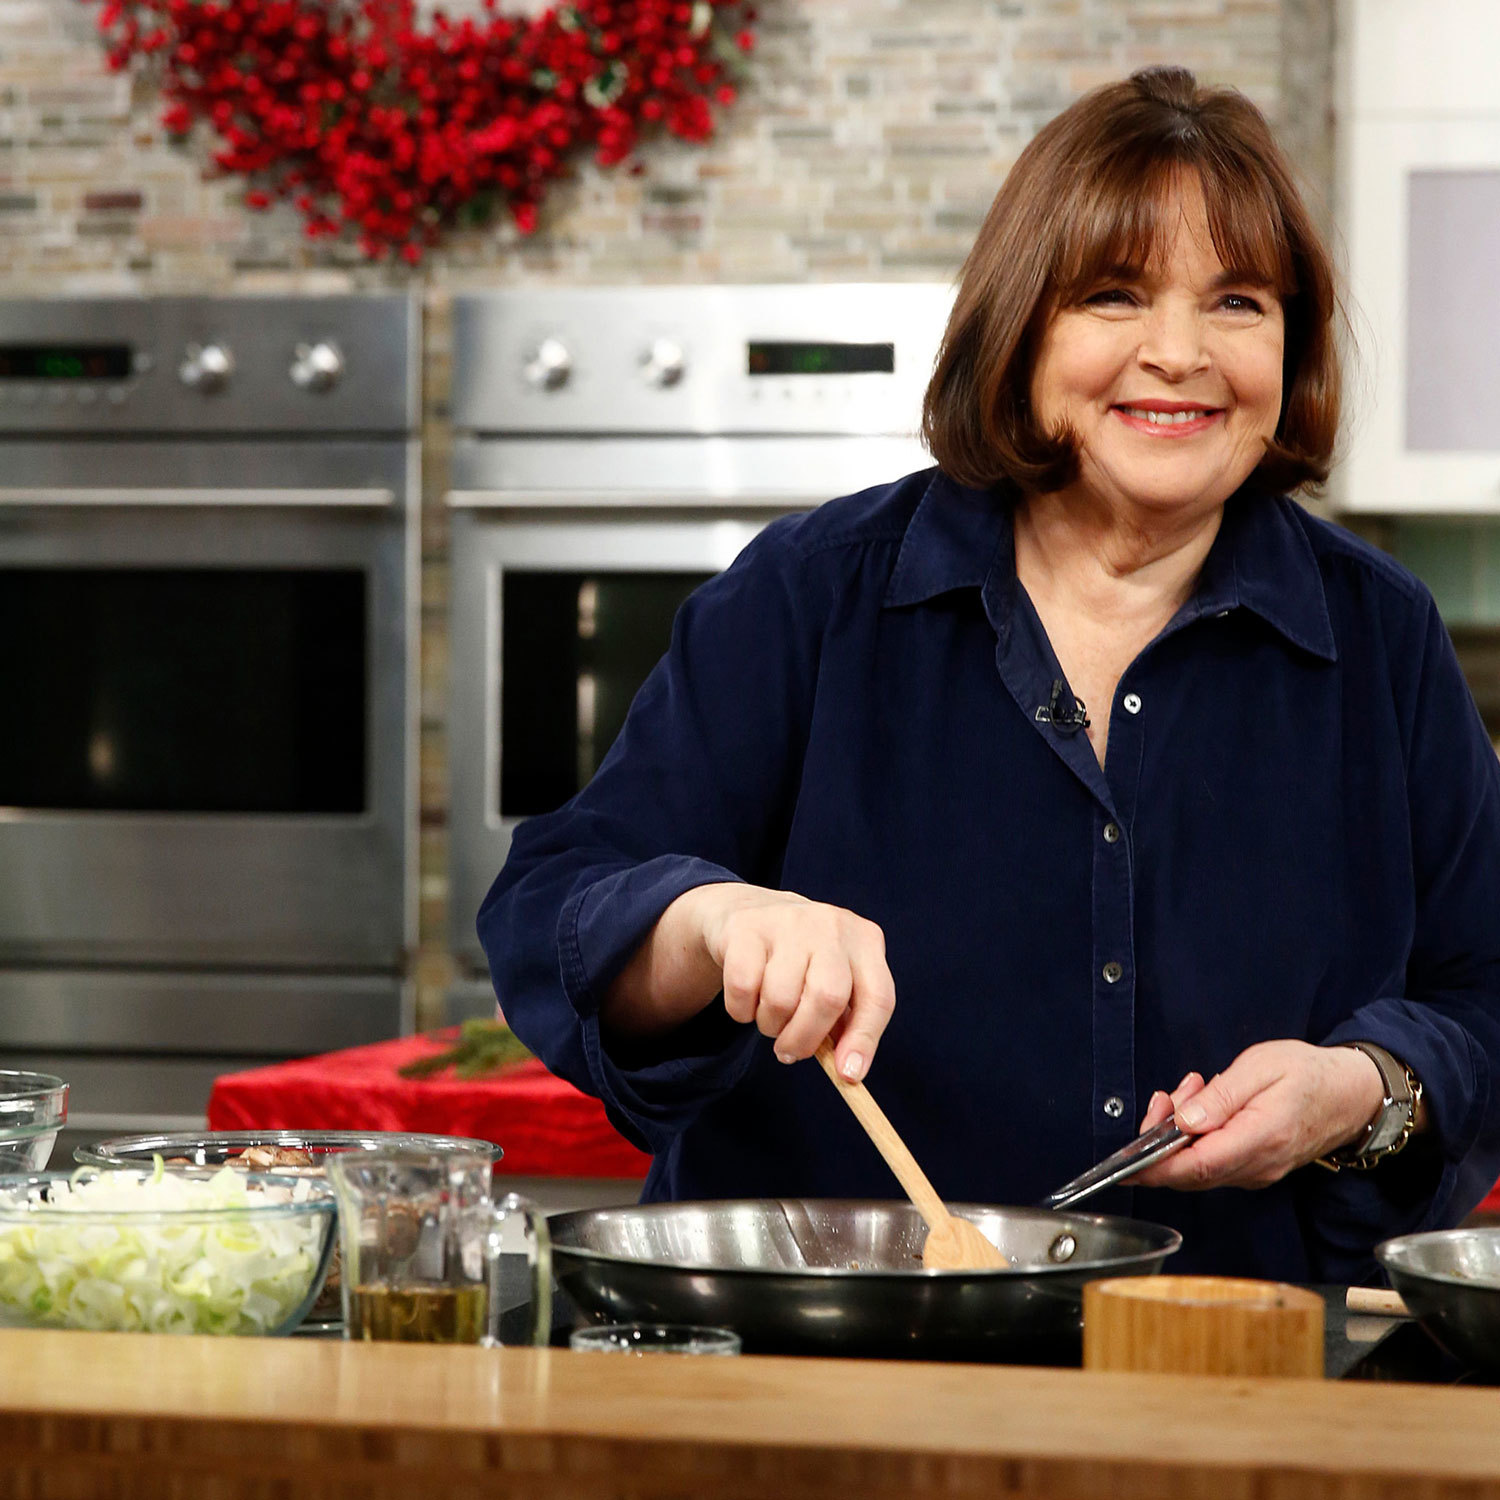 Ina Garten Is 'So Excited' to Have Friends Over for Dinner Again — and Cook This 'Decadent' Pasta Recipe